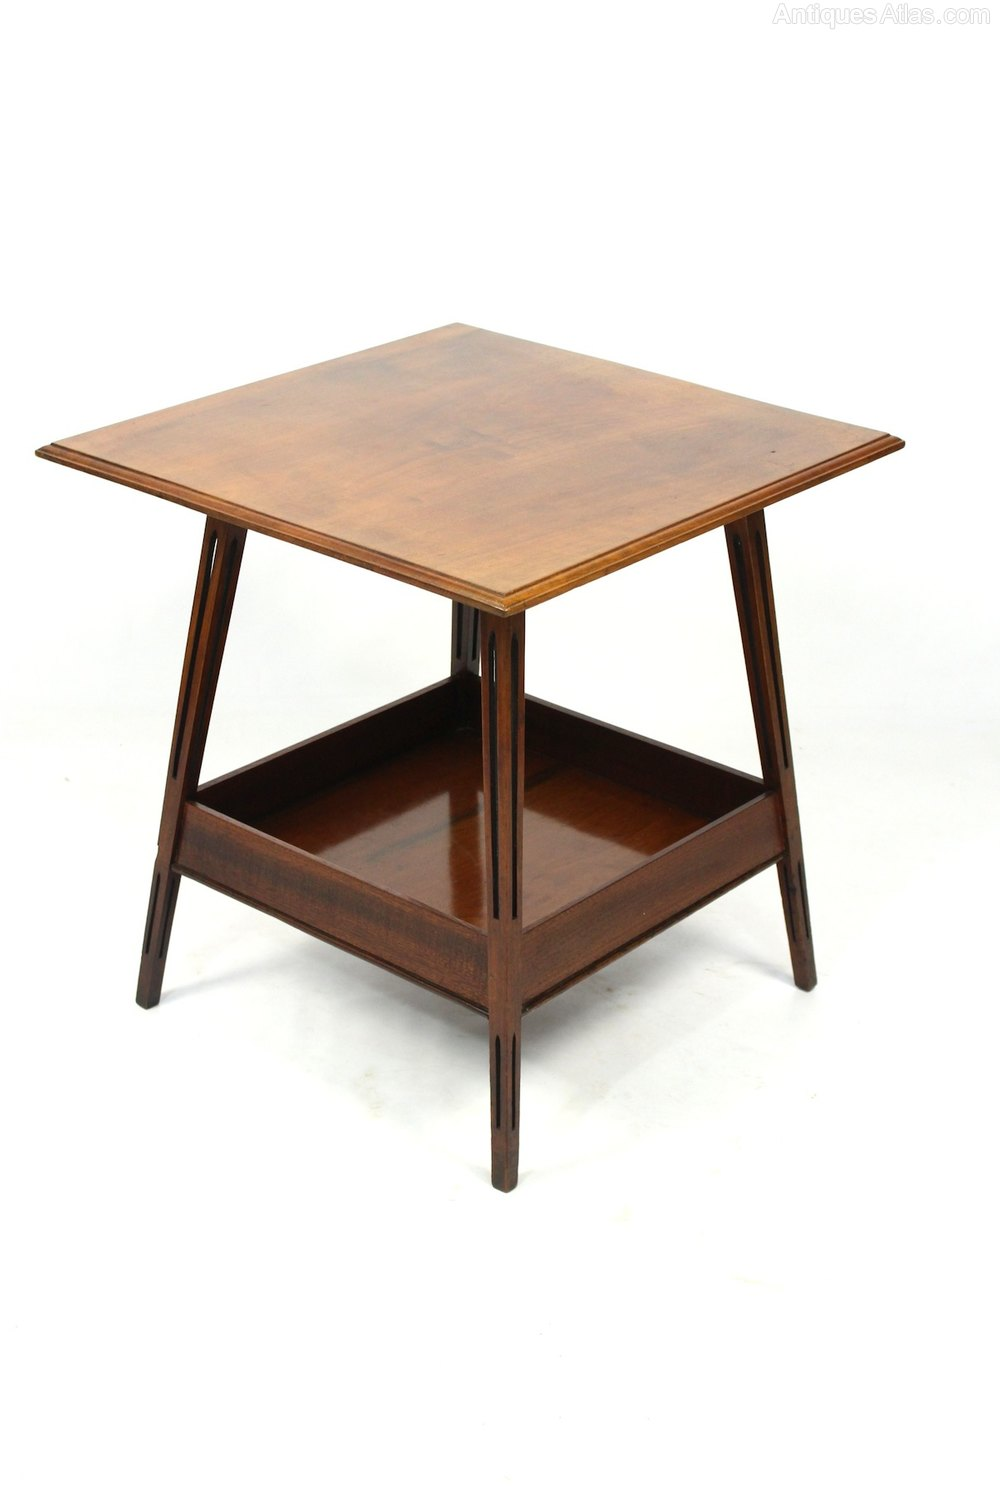 Antique edwardian walnut side occasional table antiques for Occasional tables